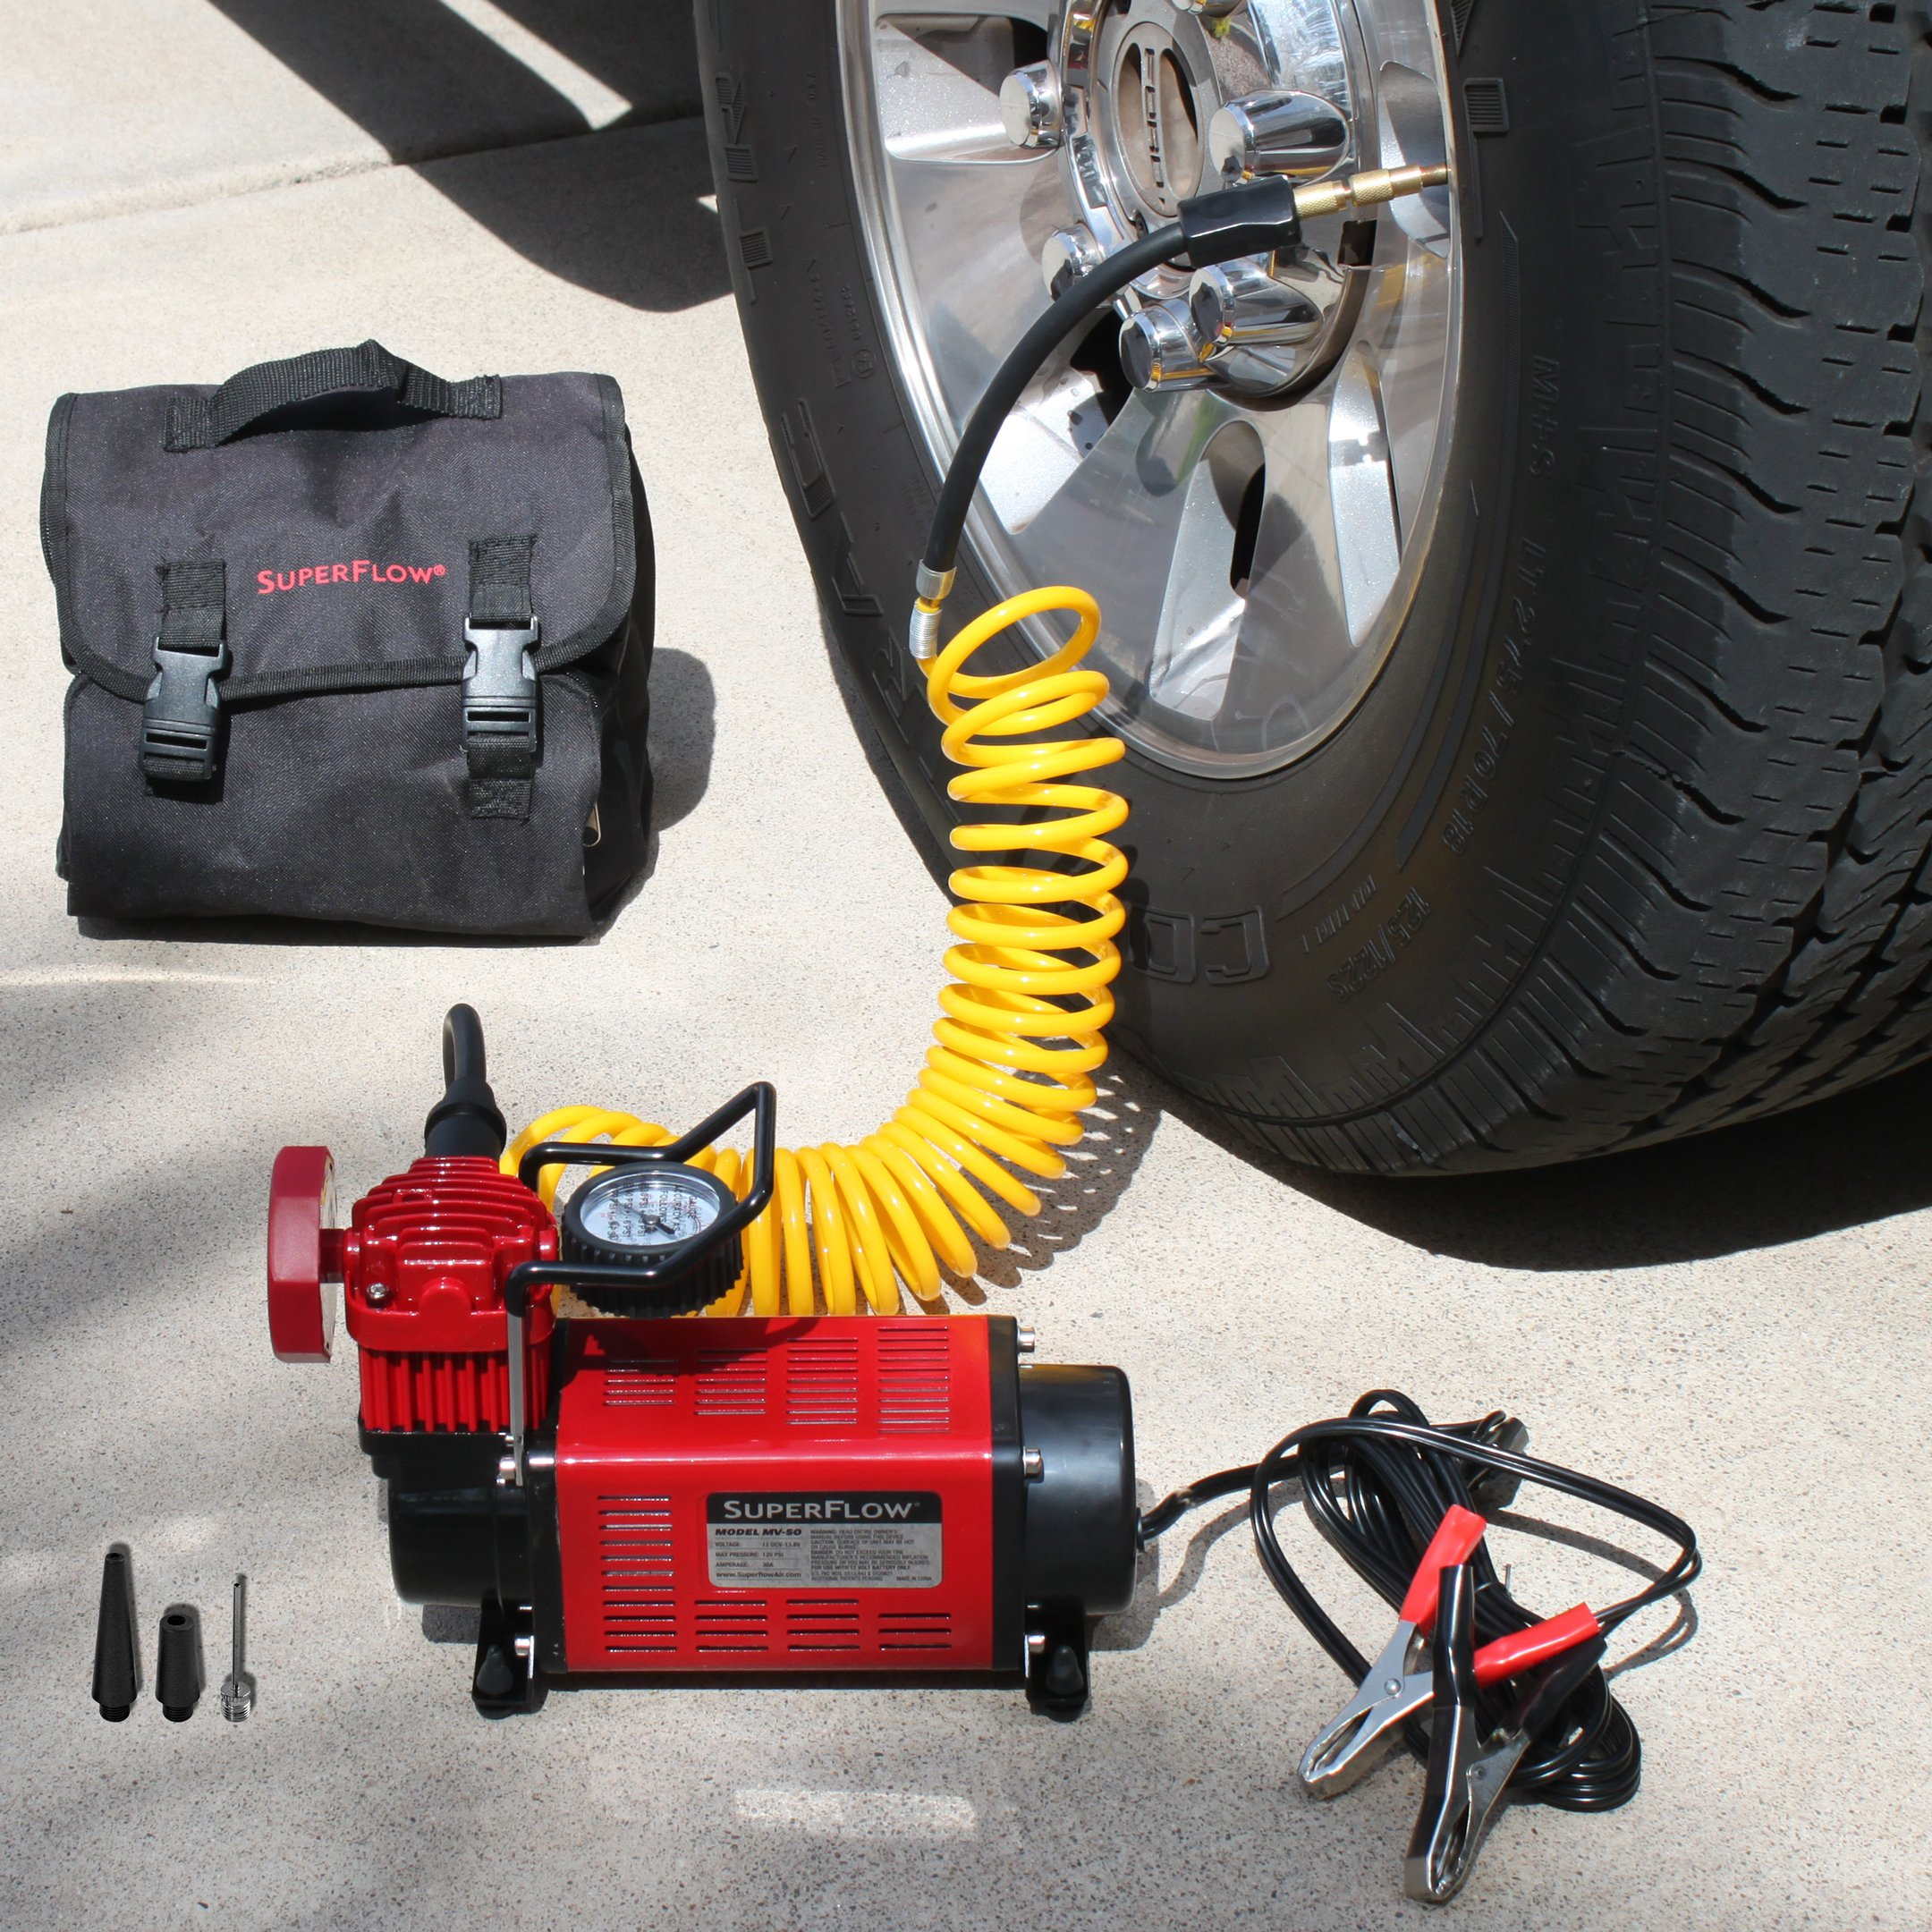 Q Industries 12 Volt Air Compressor, Portable Air Pump, 12 volt, Tire Inflator, MV-50 Air Compressor by SuperFlow for inflating full size 4 x 4, Jeep, truck, SUV and RV Tires by Q Industries (Image #2)